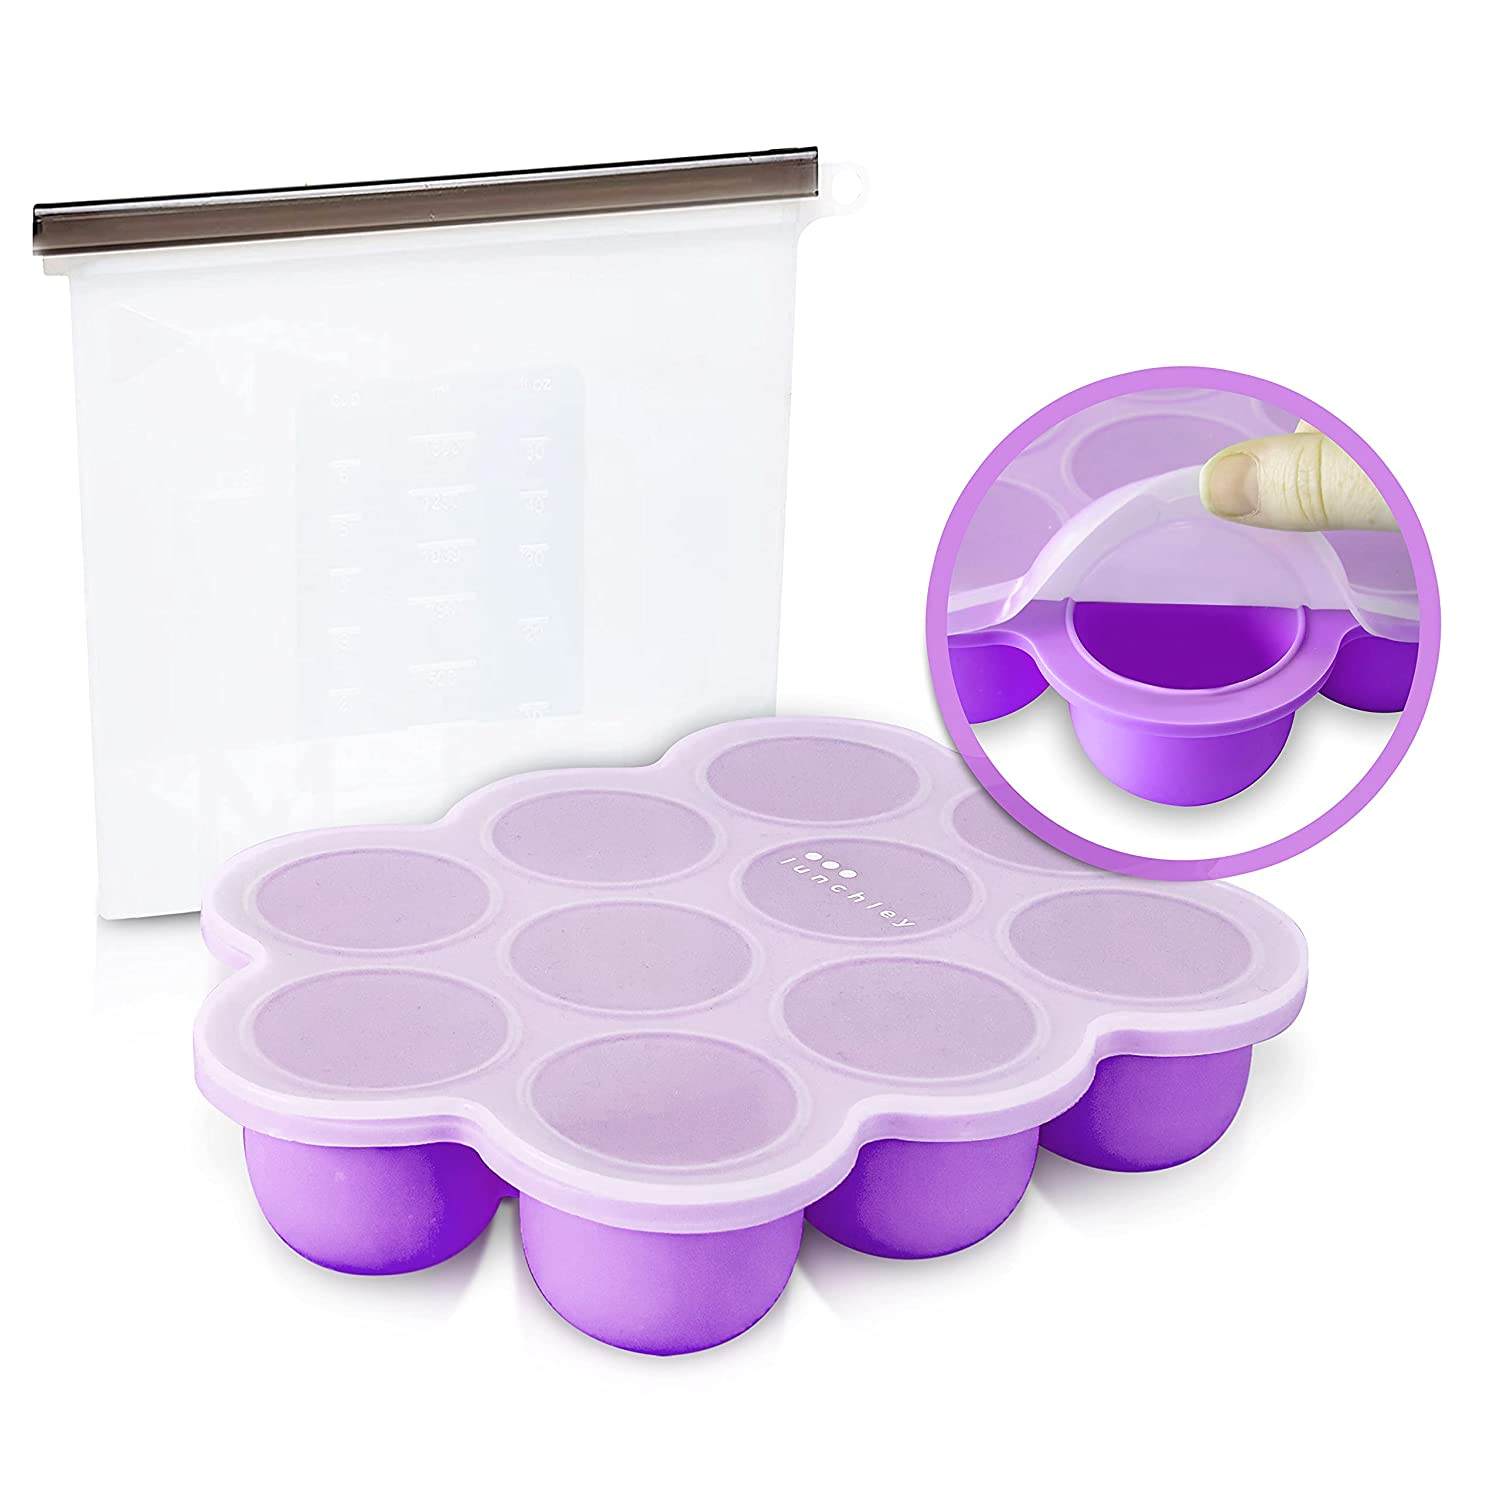 Baby Food Freezer Tray with Silicone Clip-On Lid Plus 1500ml Silicone Reusable Bag | The Perfect Storage Duo for Homemade Baby Food, Vegetable & Fruit Purees and Breast Milk (Pale Mauve)